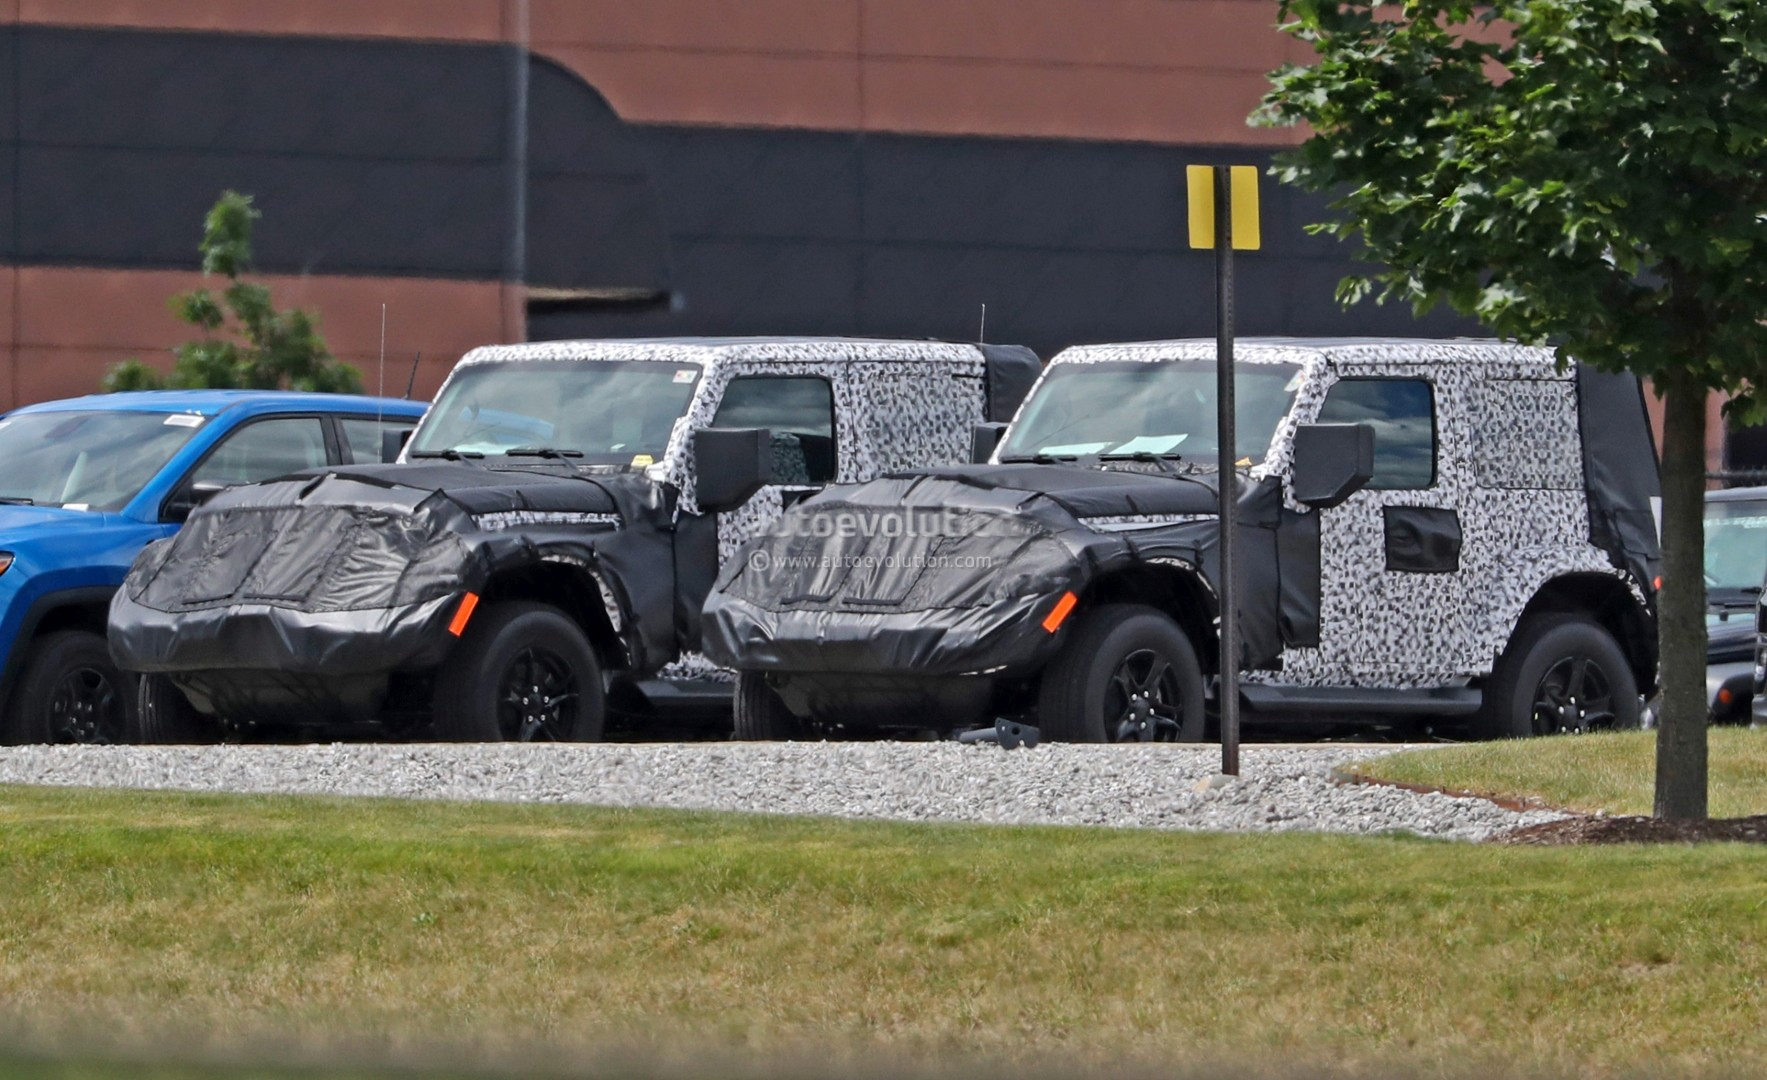 2018 Jeep Wrangler Jl Soft Top >> 2018 Jeep Wrangler JL Two-Door Spied, Shows Hardtop and Soft Top Versions - autoevolution